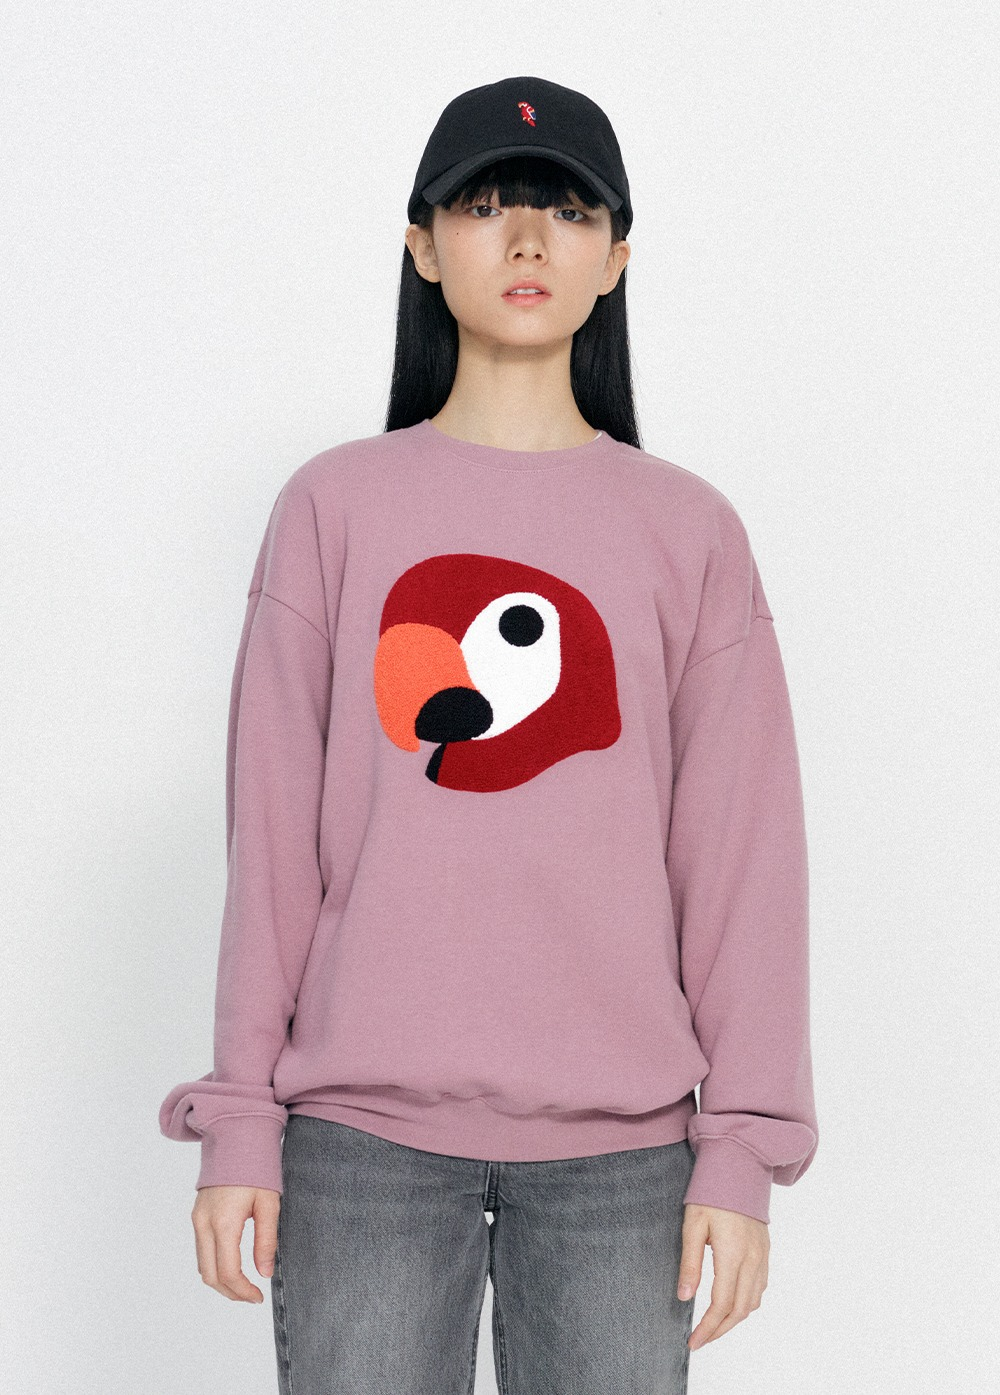 KANCO BIG LOGO SWEATSHIRT gray pink